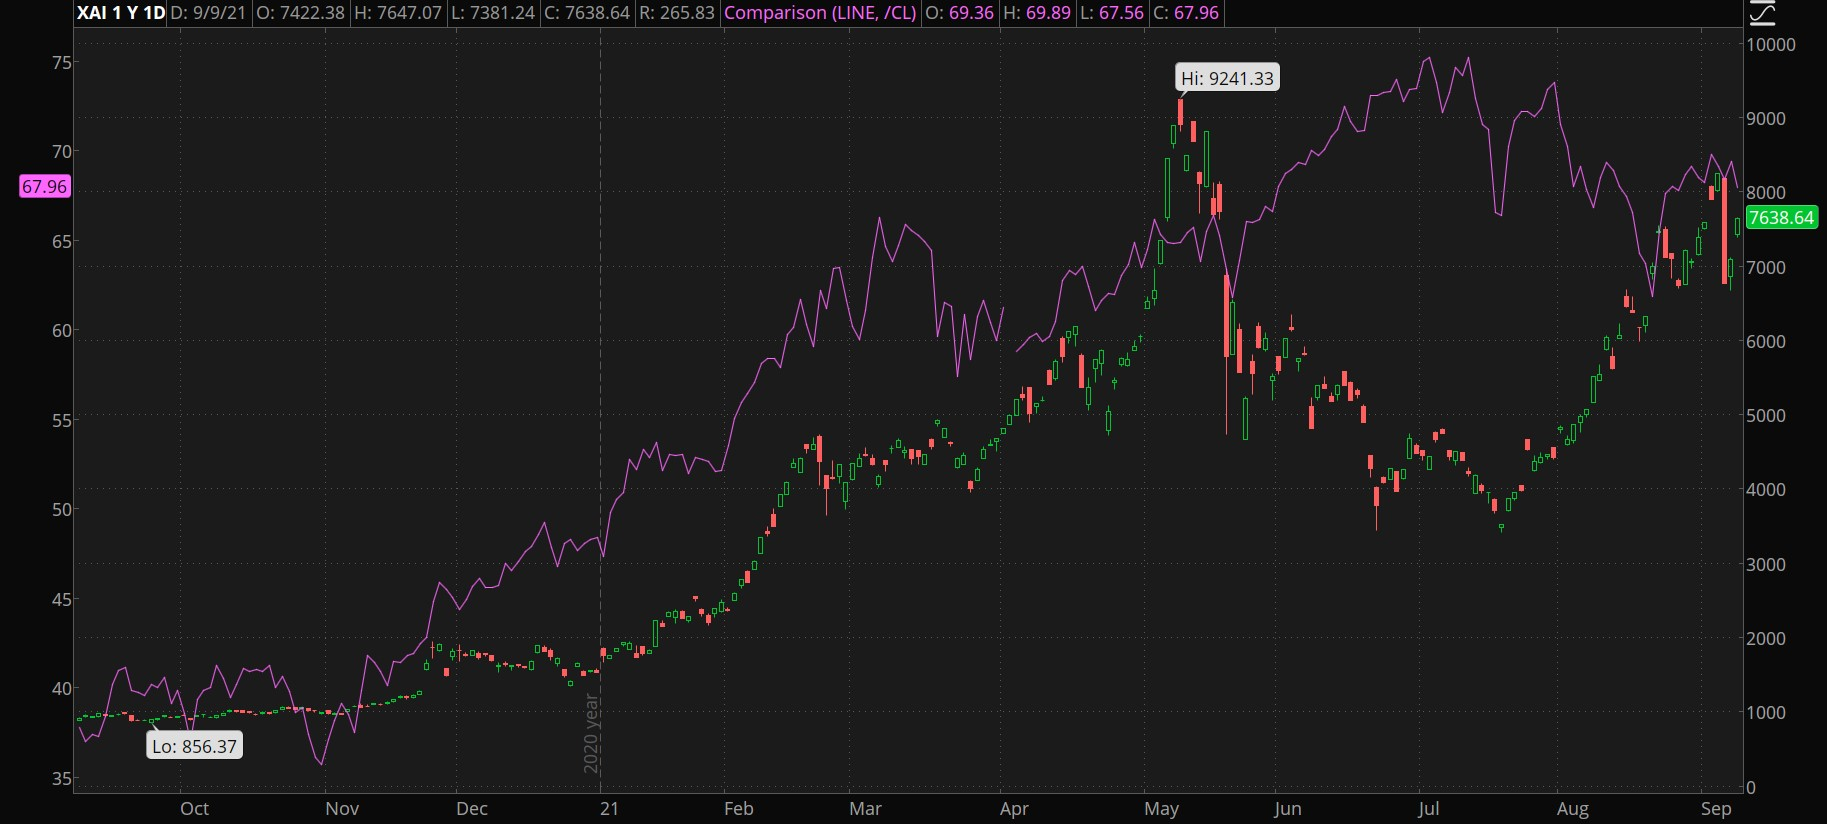 oil prices and airlines